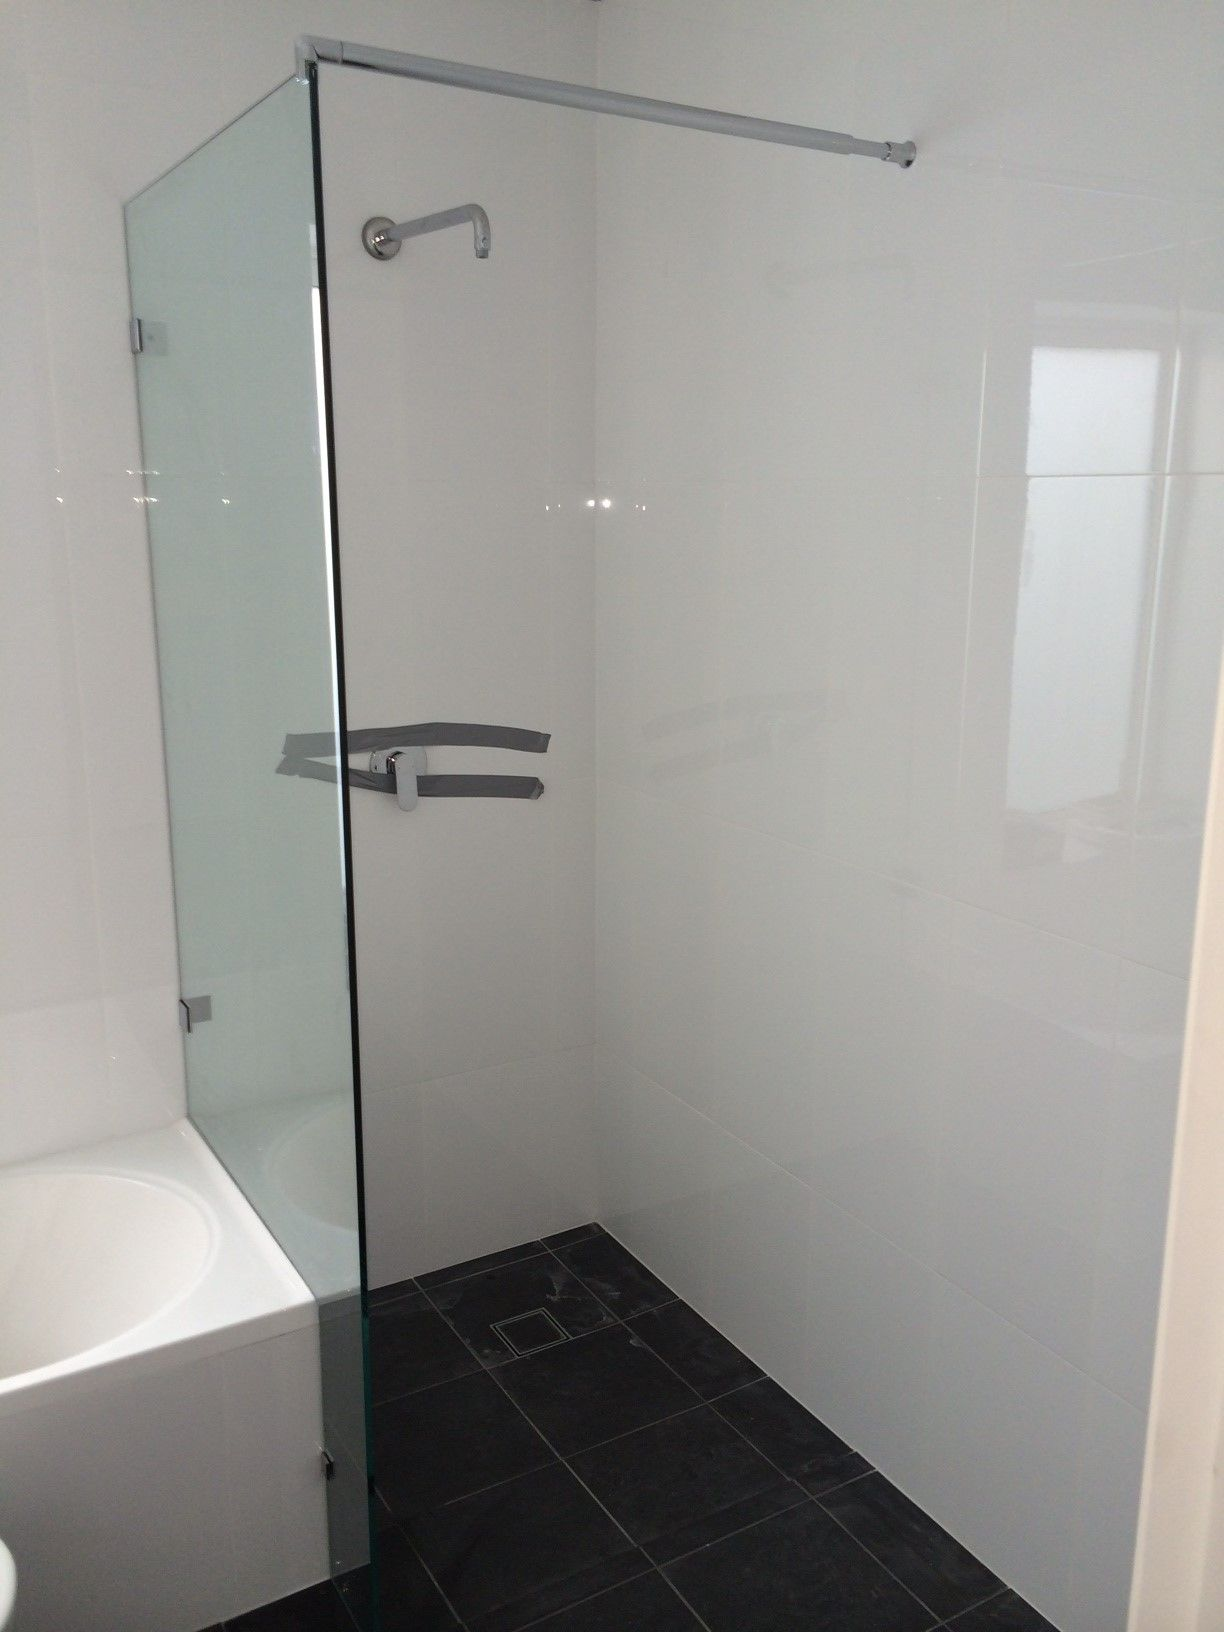 Frameless Shower Screen Panel On Bath End With Brace 10mm Jpg 1224 1632 Glass Closet Doors Shower Screen Frameless Shower